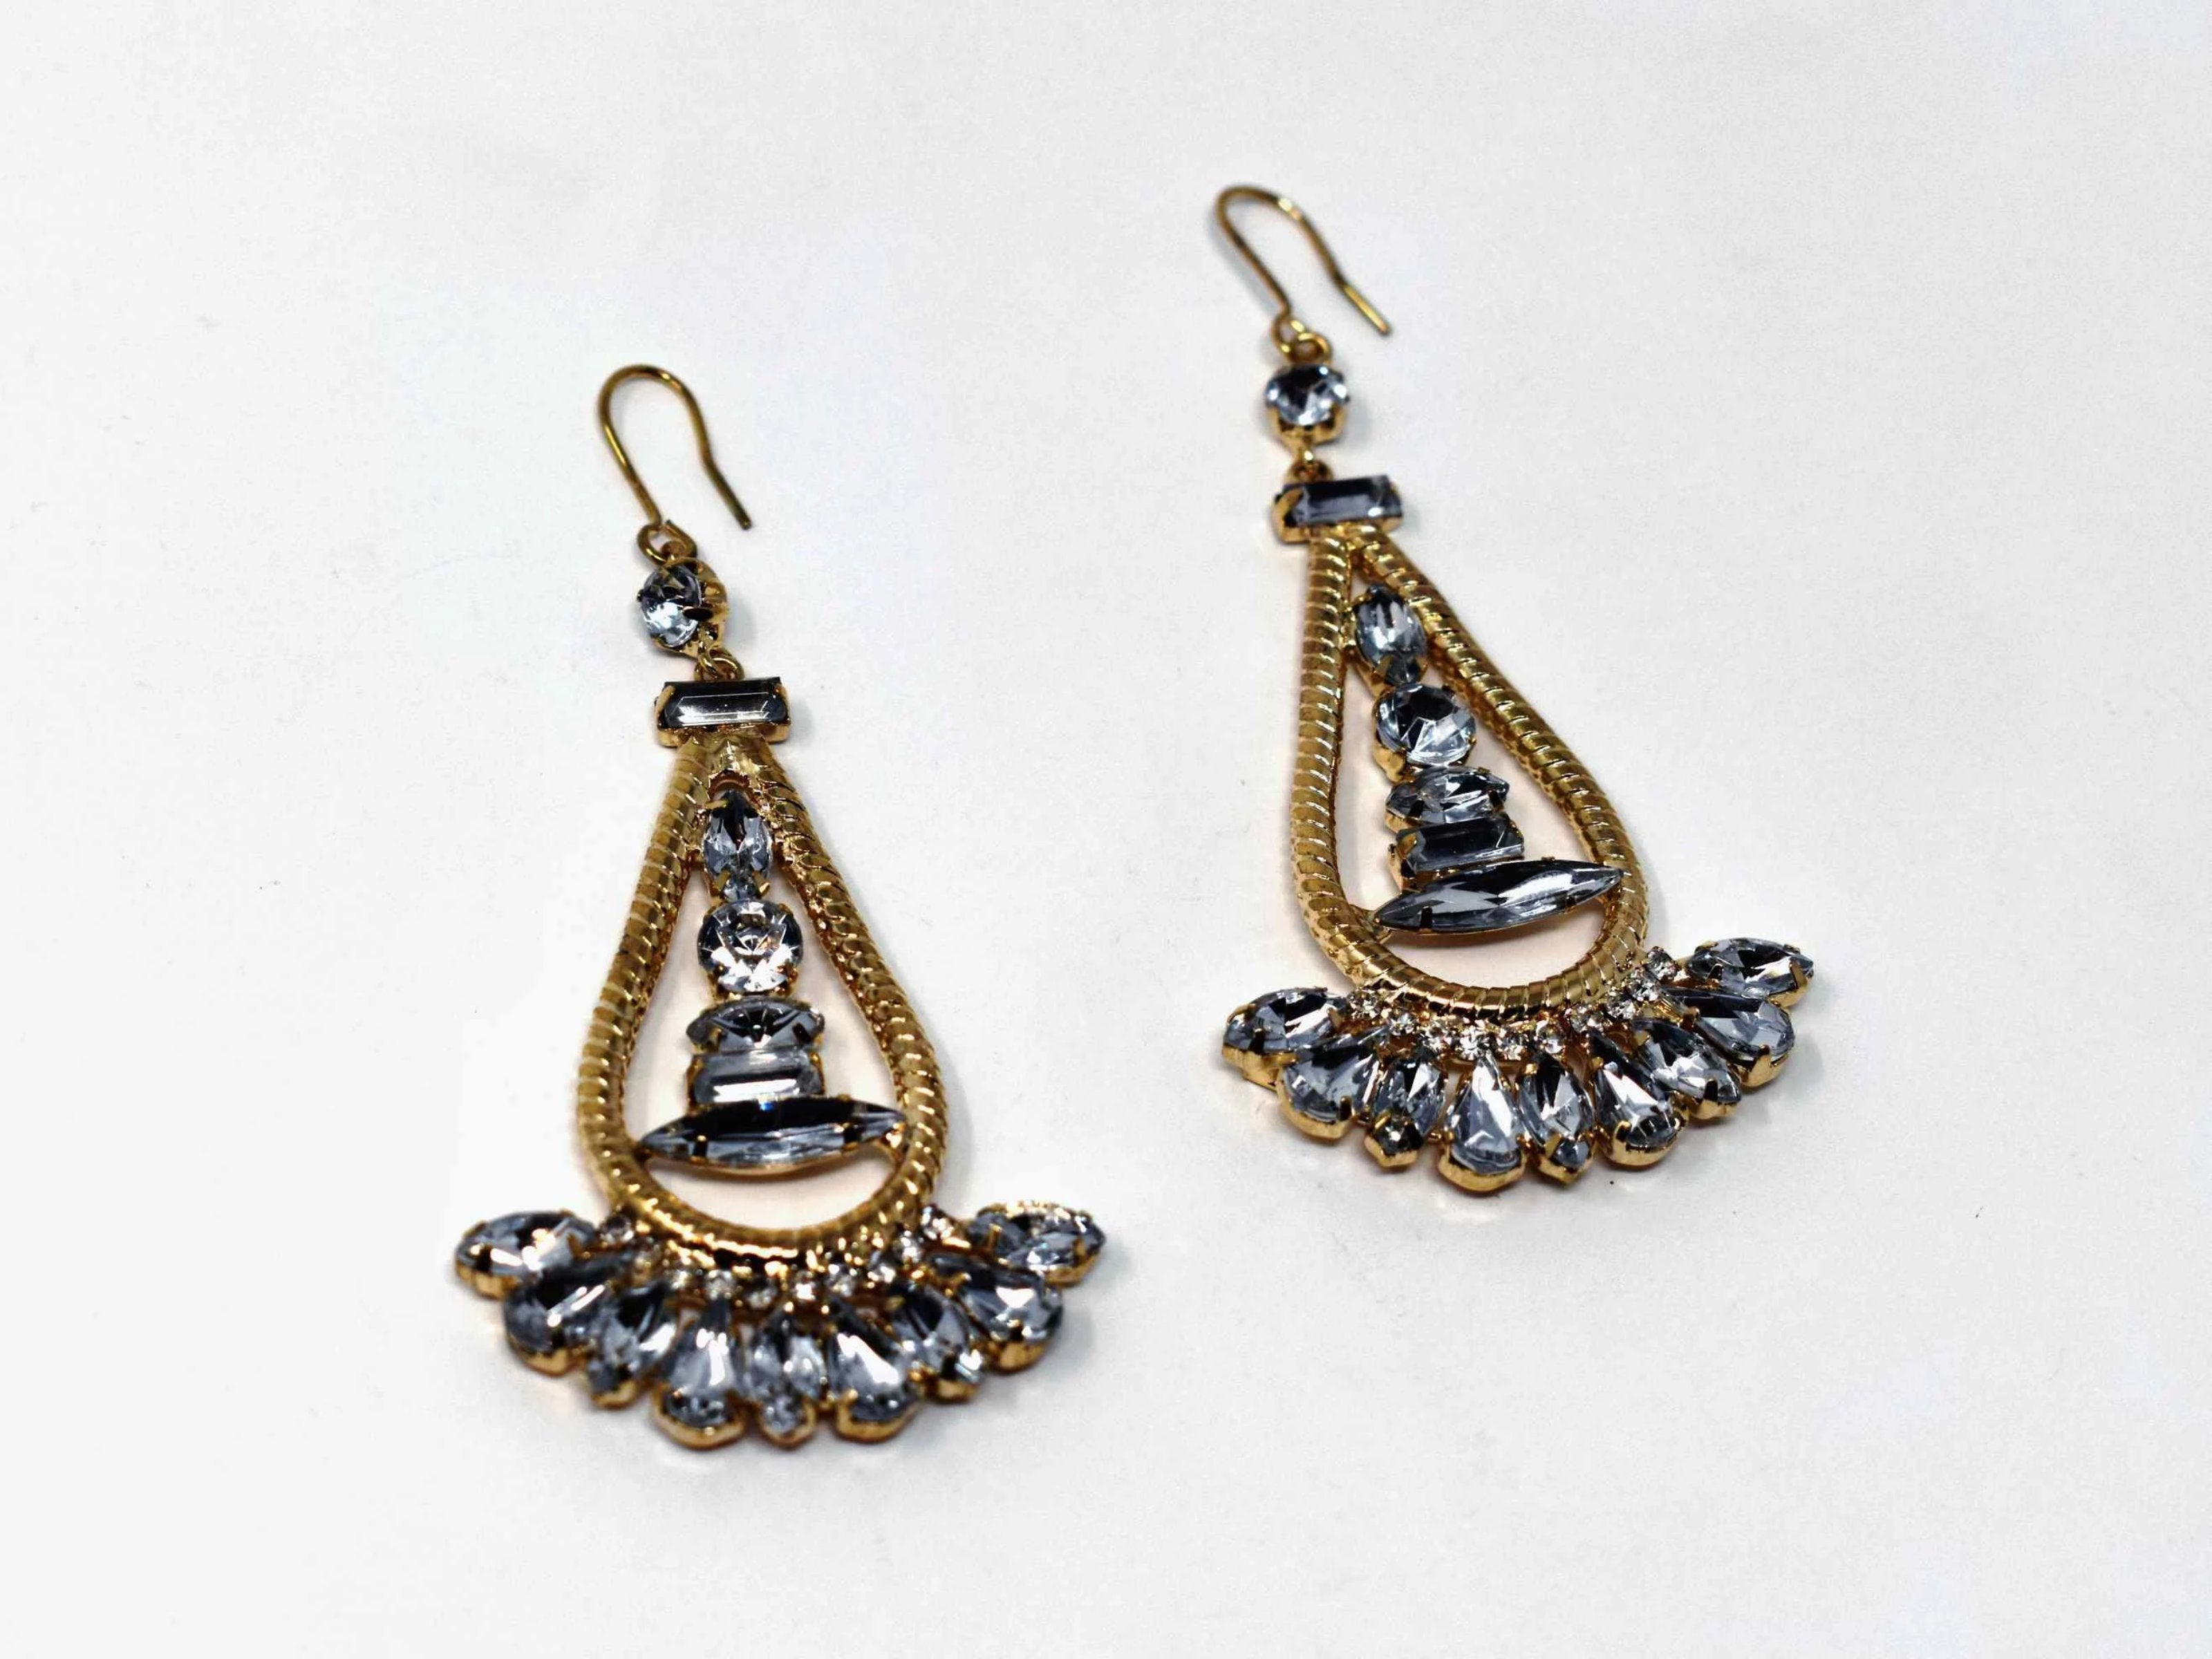 Anemone is a gold with clear stone eye catching drop , dangle style earring. It comes with a fish hook clasp and is 3 inches in length.